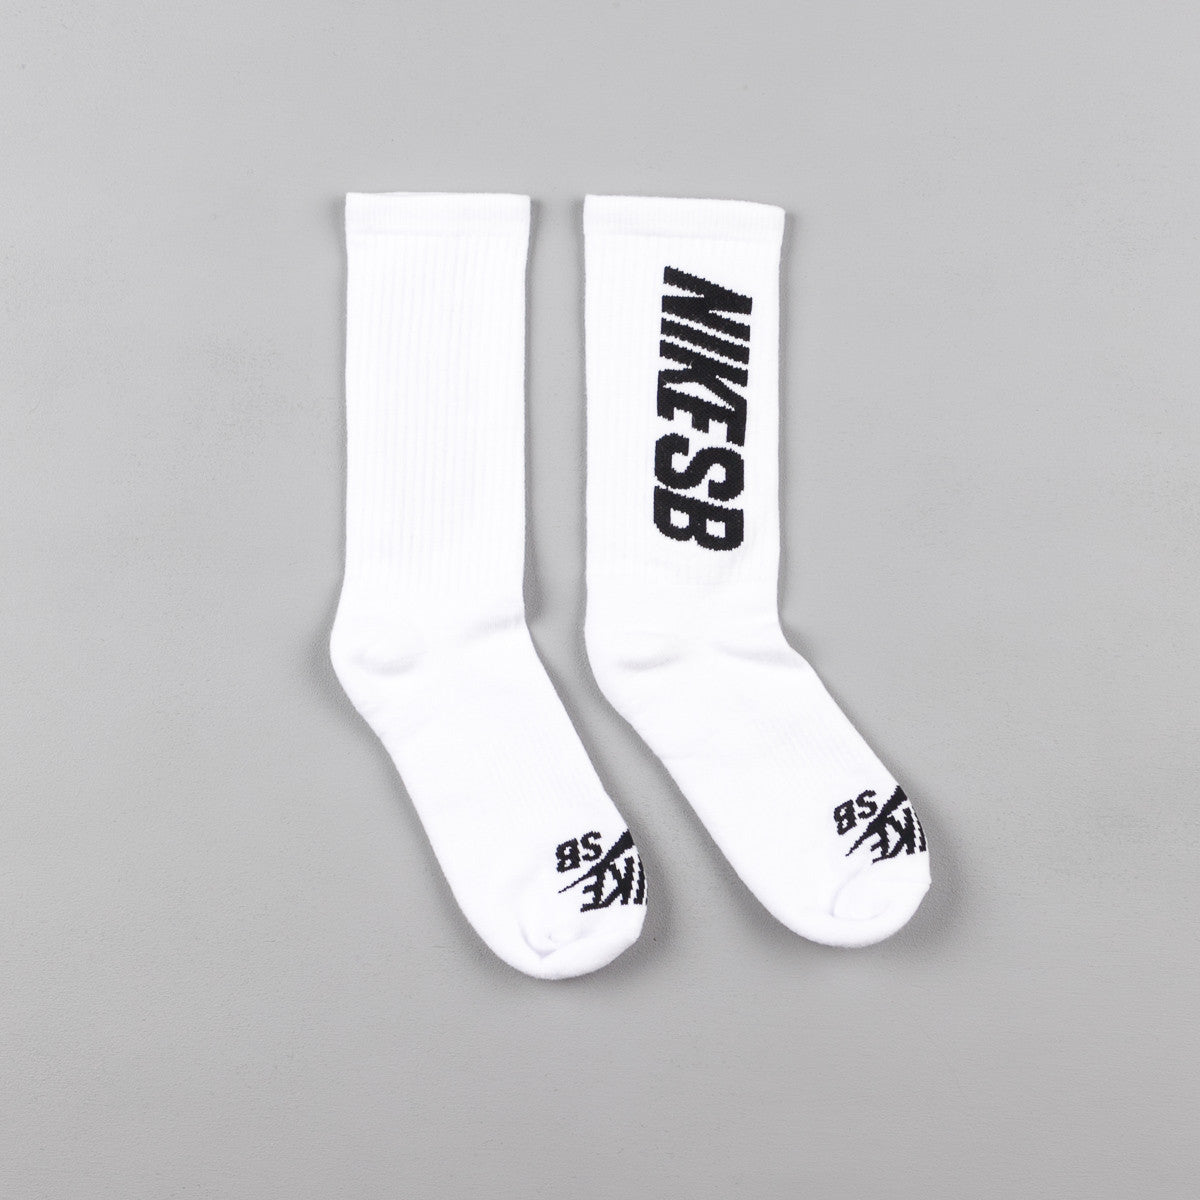 nike sb crew skateboarding socks 3 pair white black. Black Bedroom Furniture Sets. Home Design Ideas